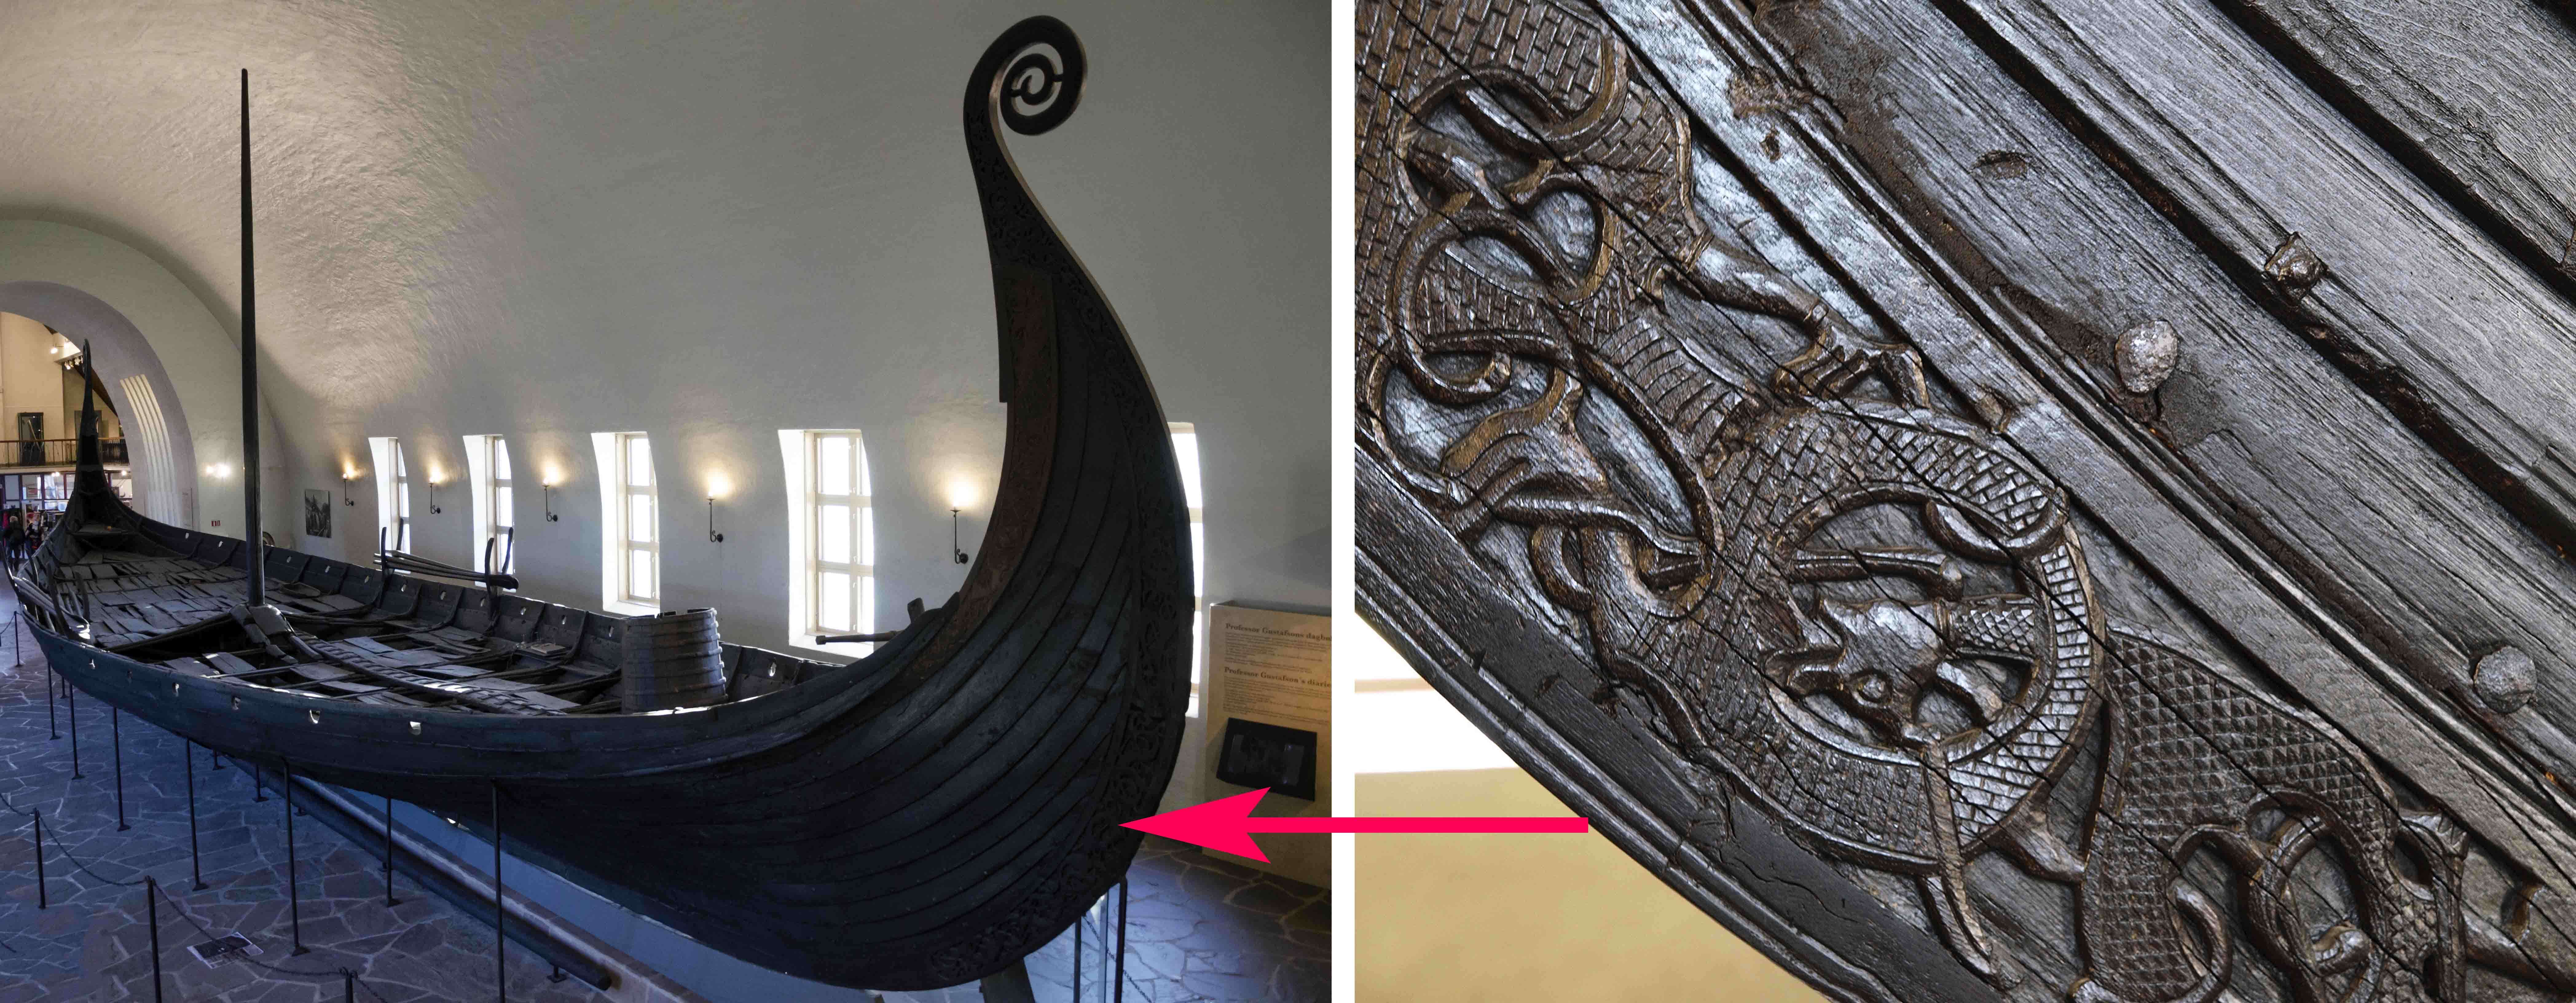 Oseberg ship and detail of prow